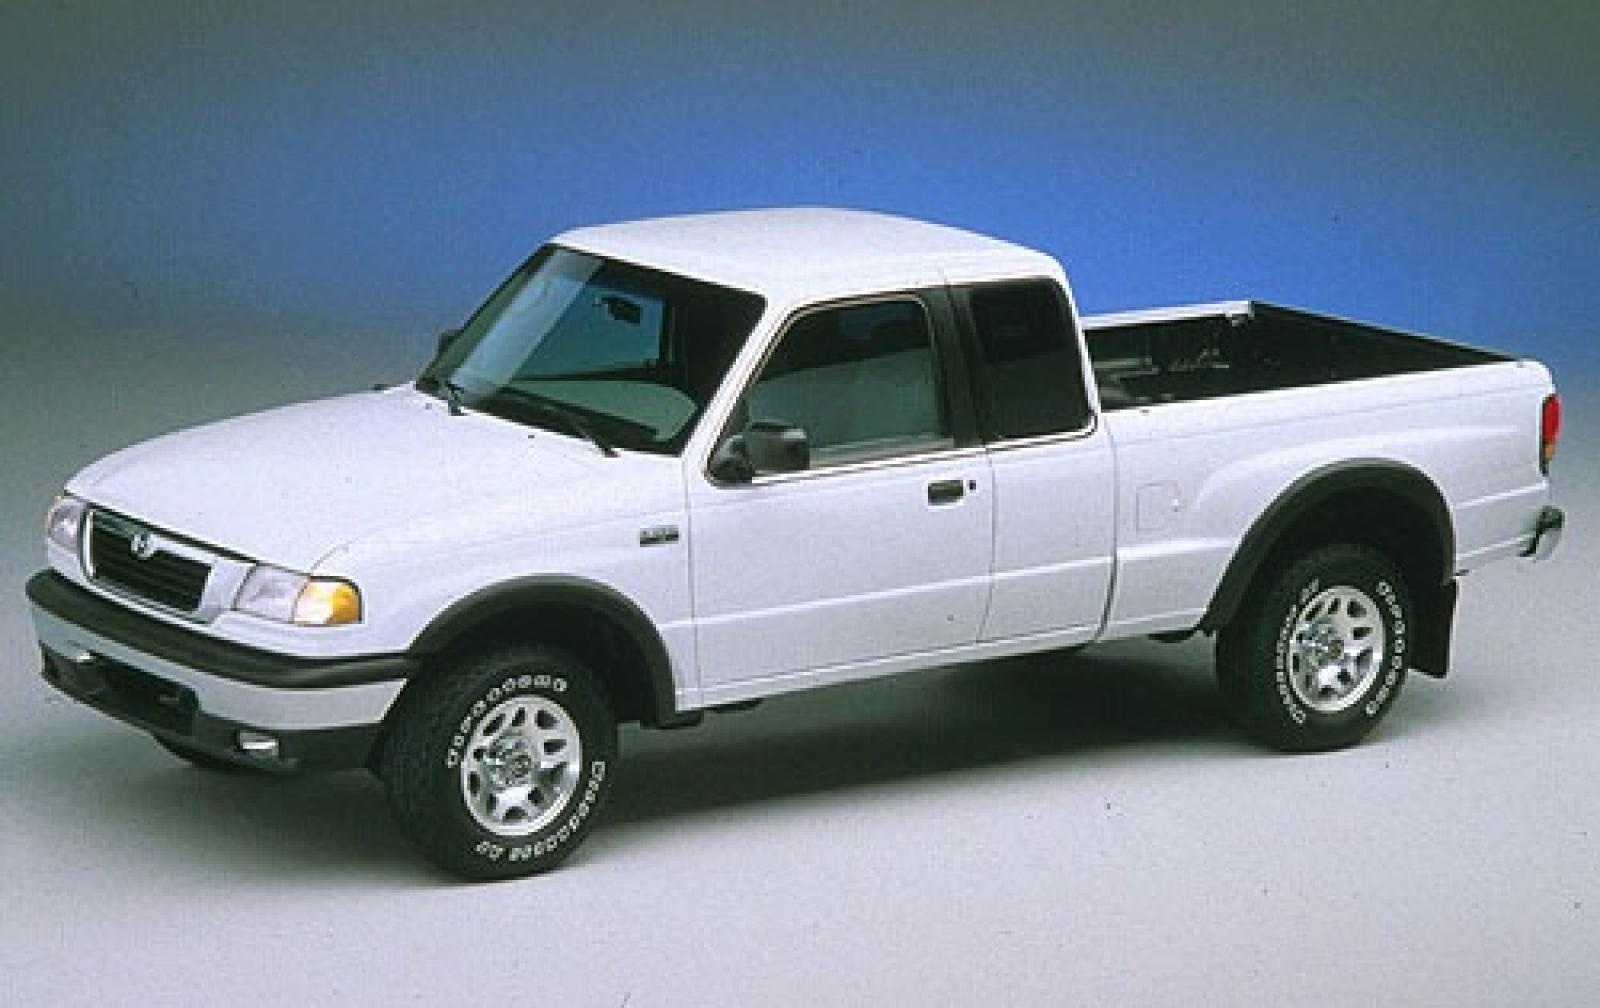 1999 mazda b series pickup 1 800 1024 1280 1600 origin